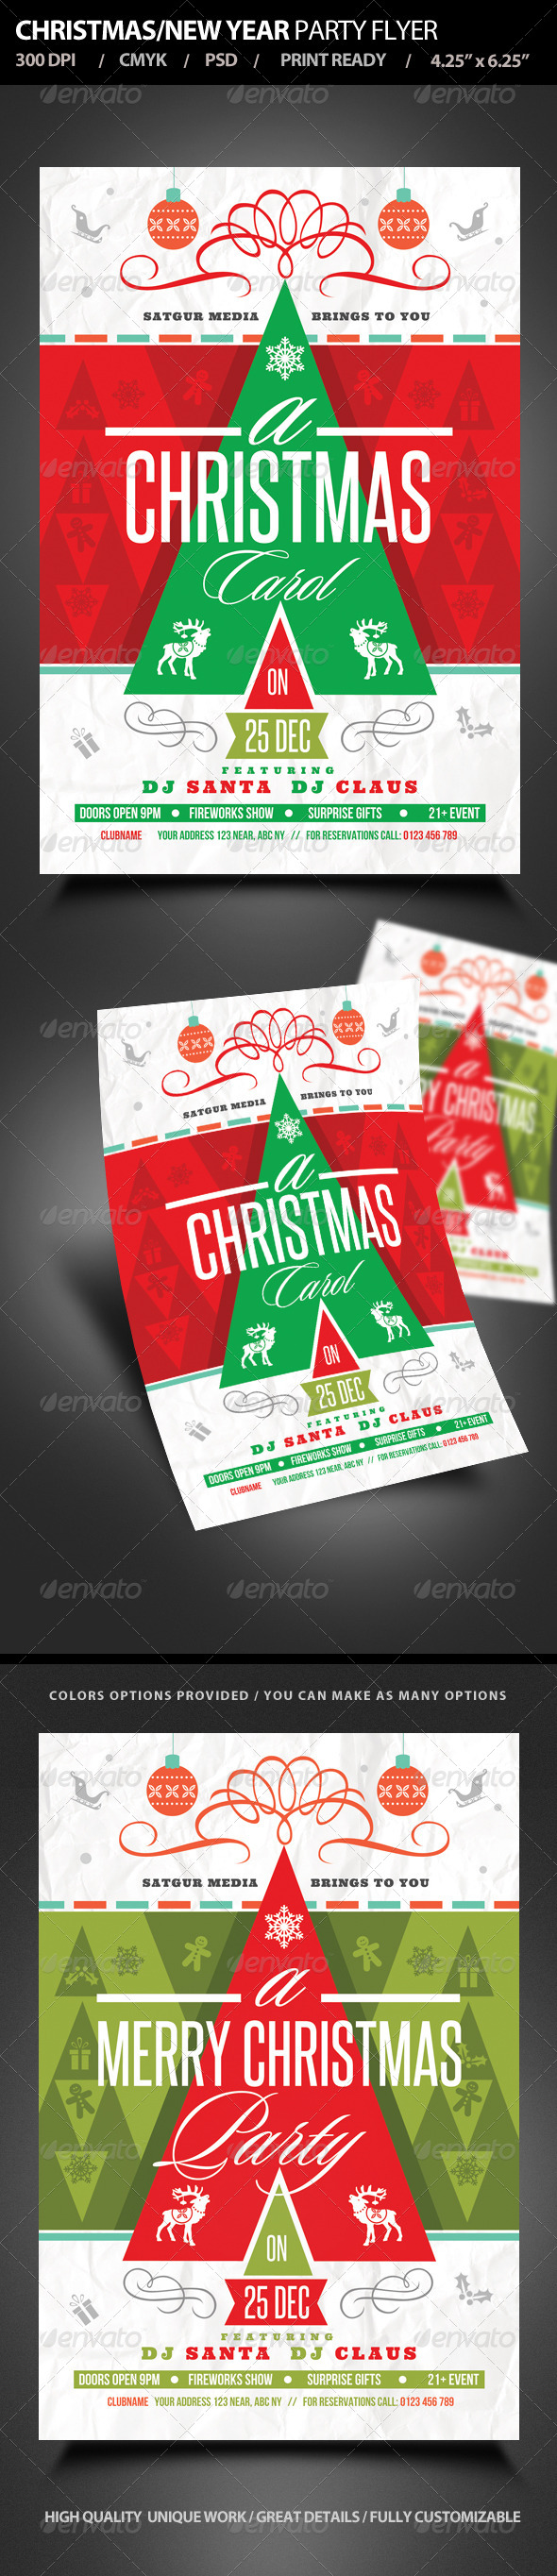 GraphicRiver Christmas New Year Party Flyer 6265638